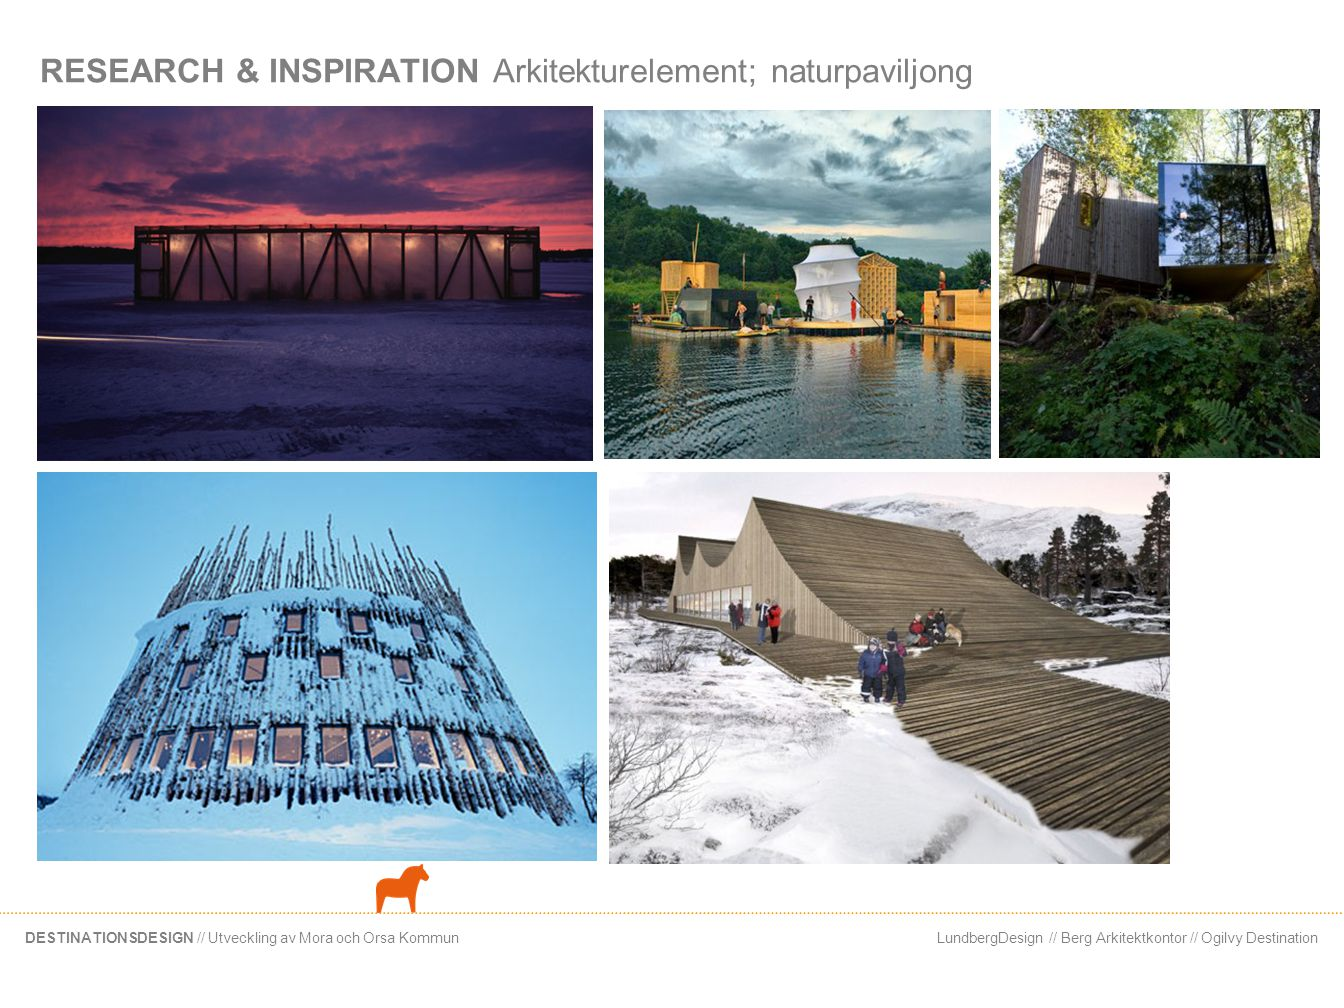 RESEARCH & INSPIRATION Arkitekturelement; naturpaviljong